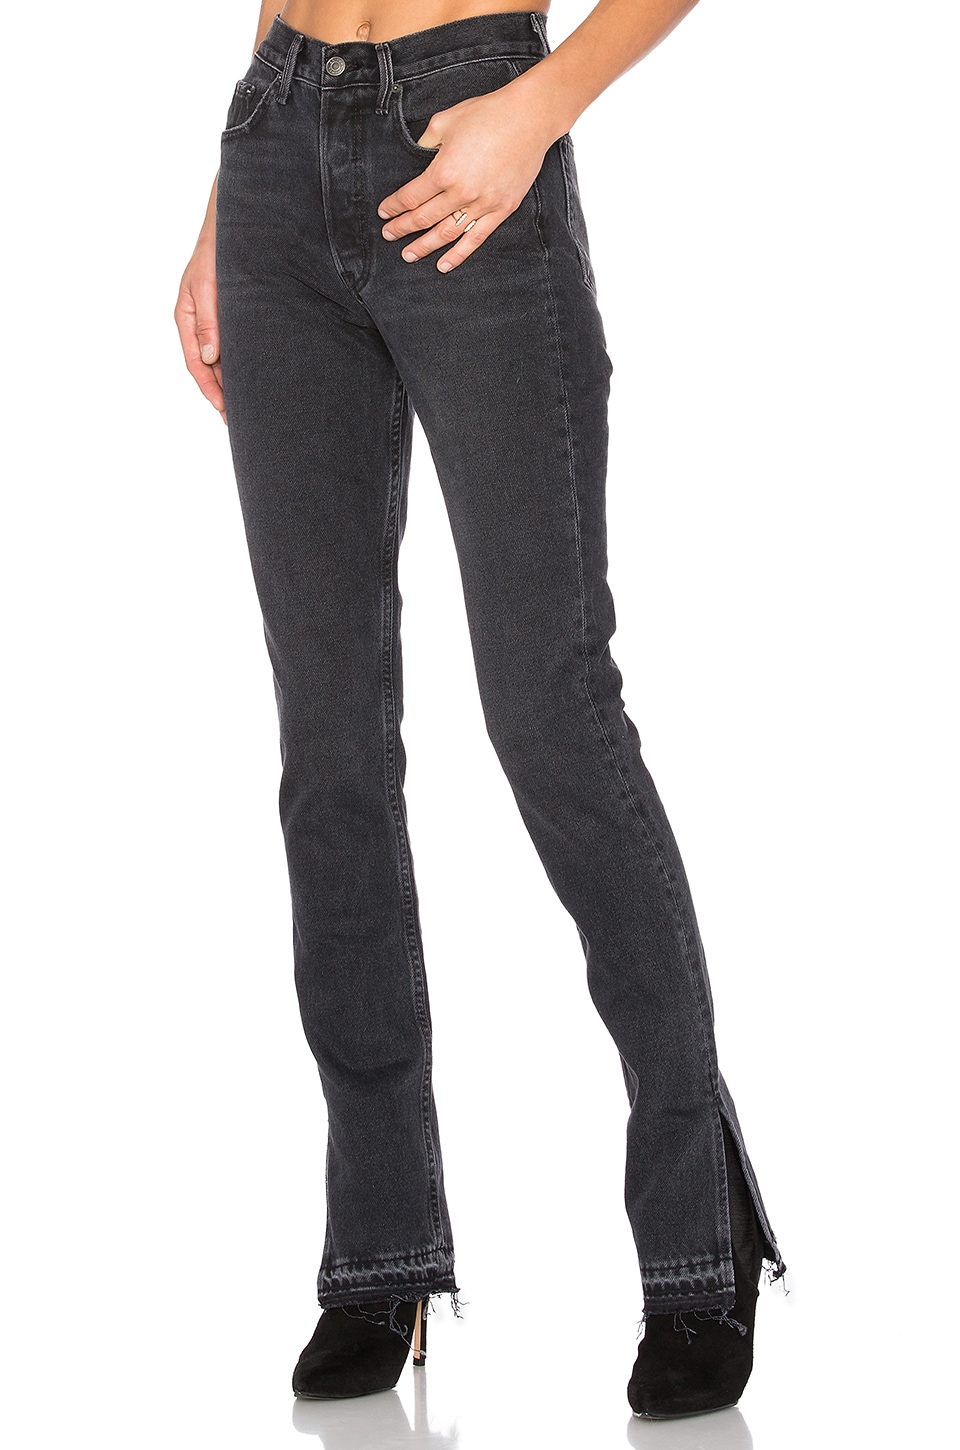 GRLFRND Natalia High-Rise Skinny Split Jean in Hot Stuff